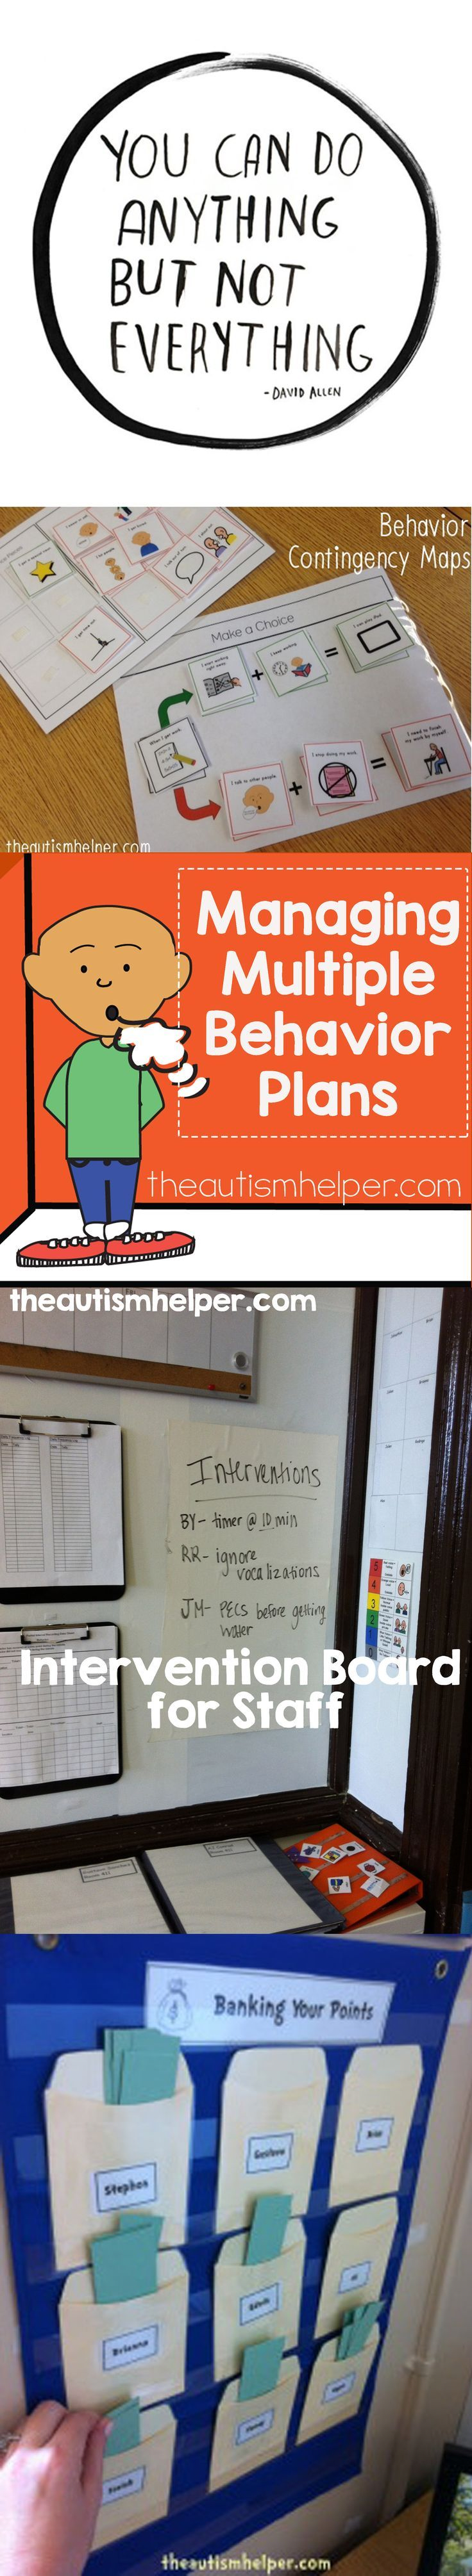 Stay on track with our tips for managing multiple behavior plans at once! From theautismhelper.com #theautismhelper